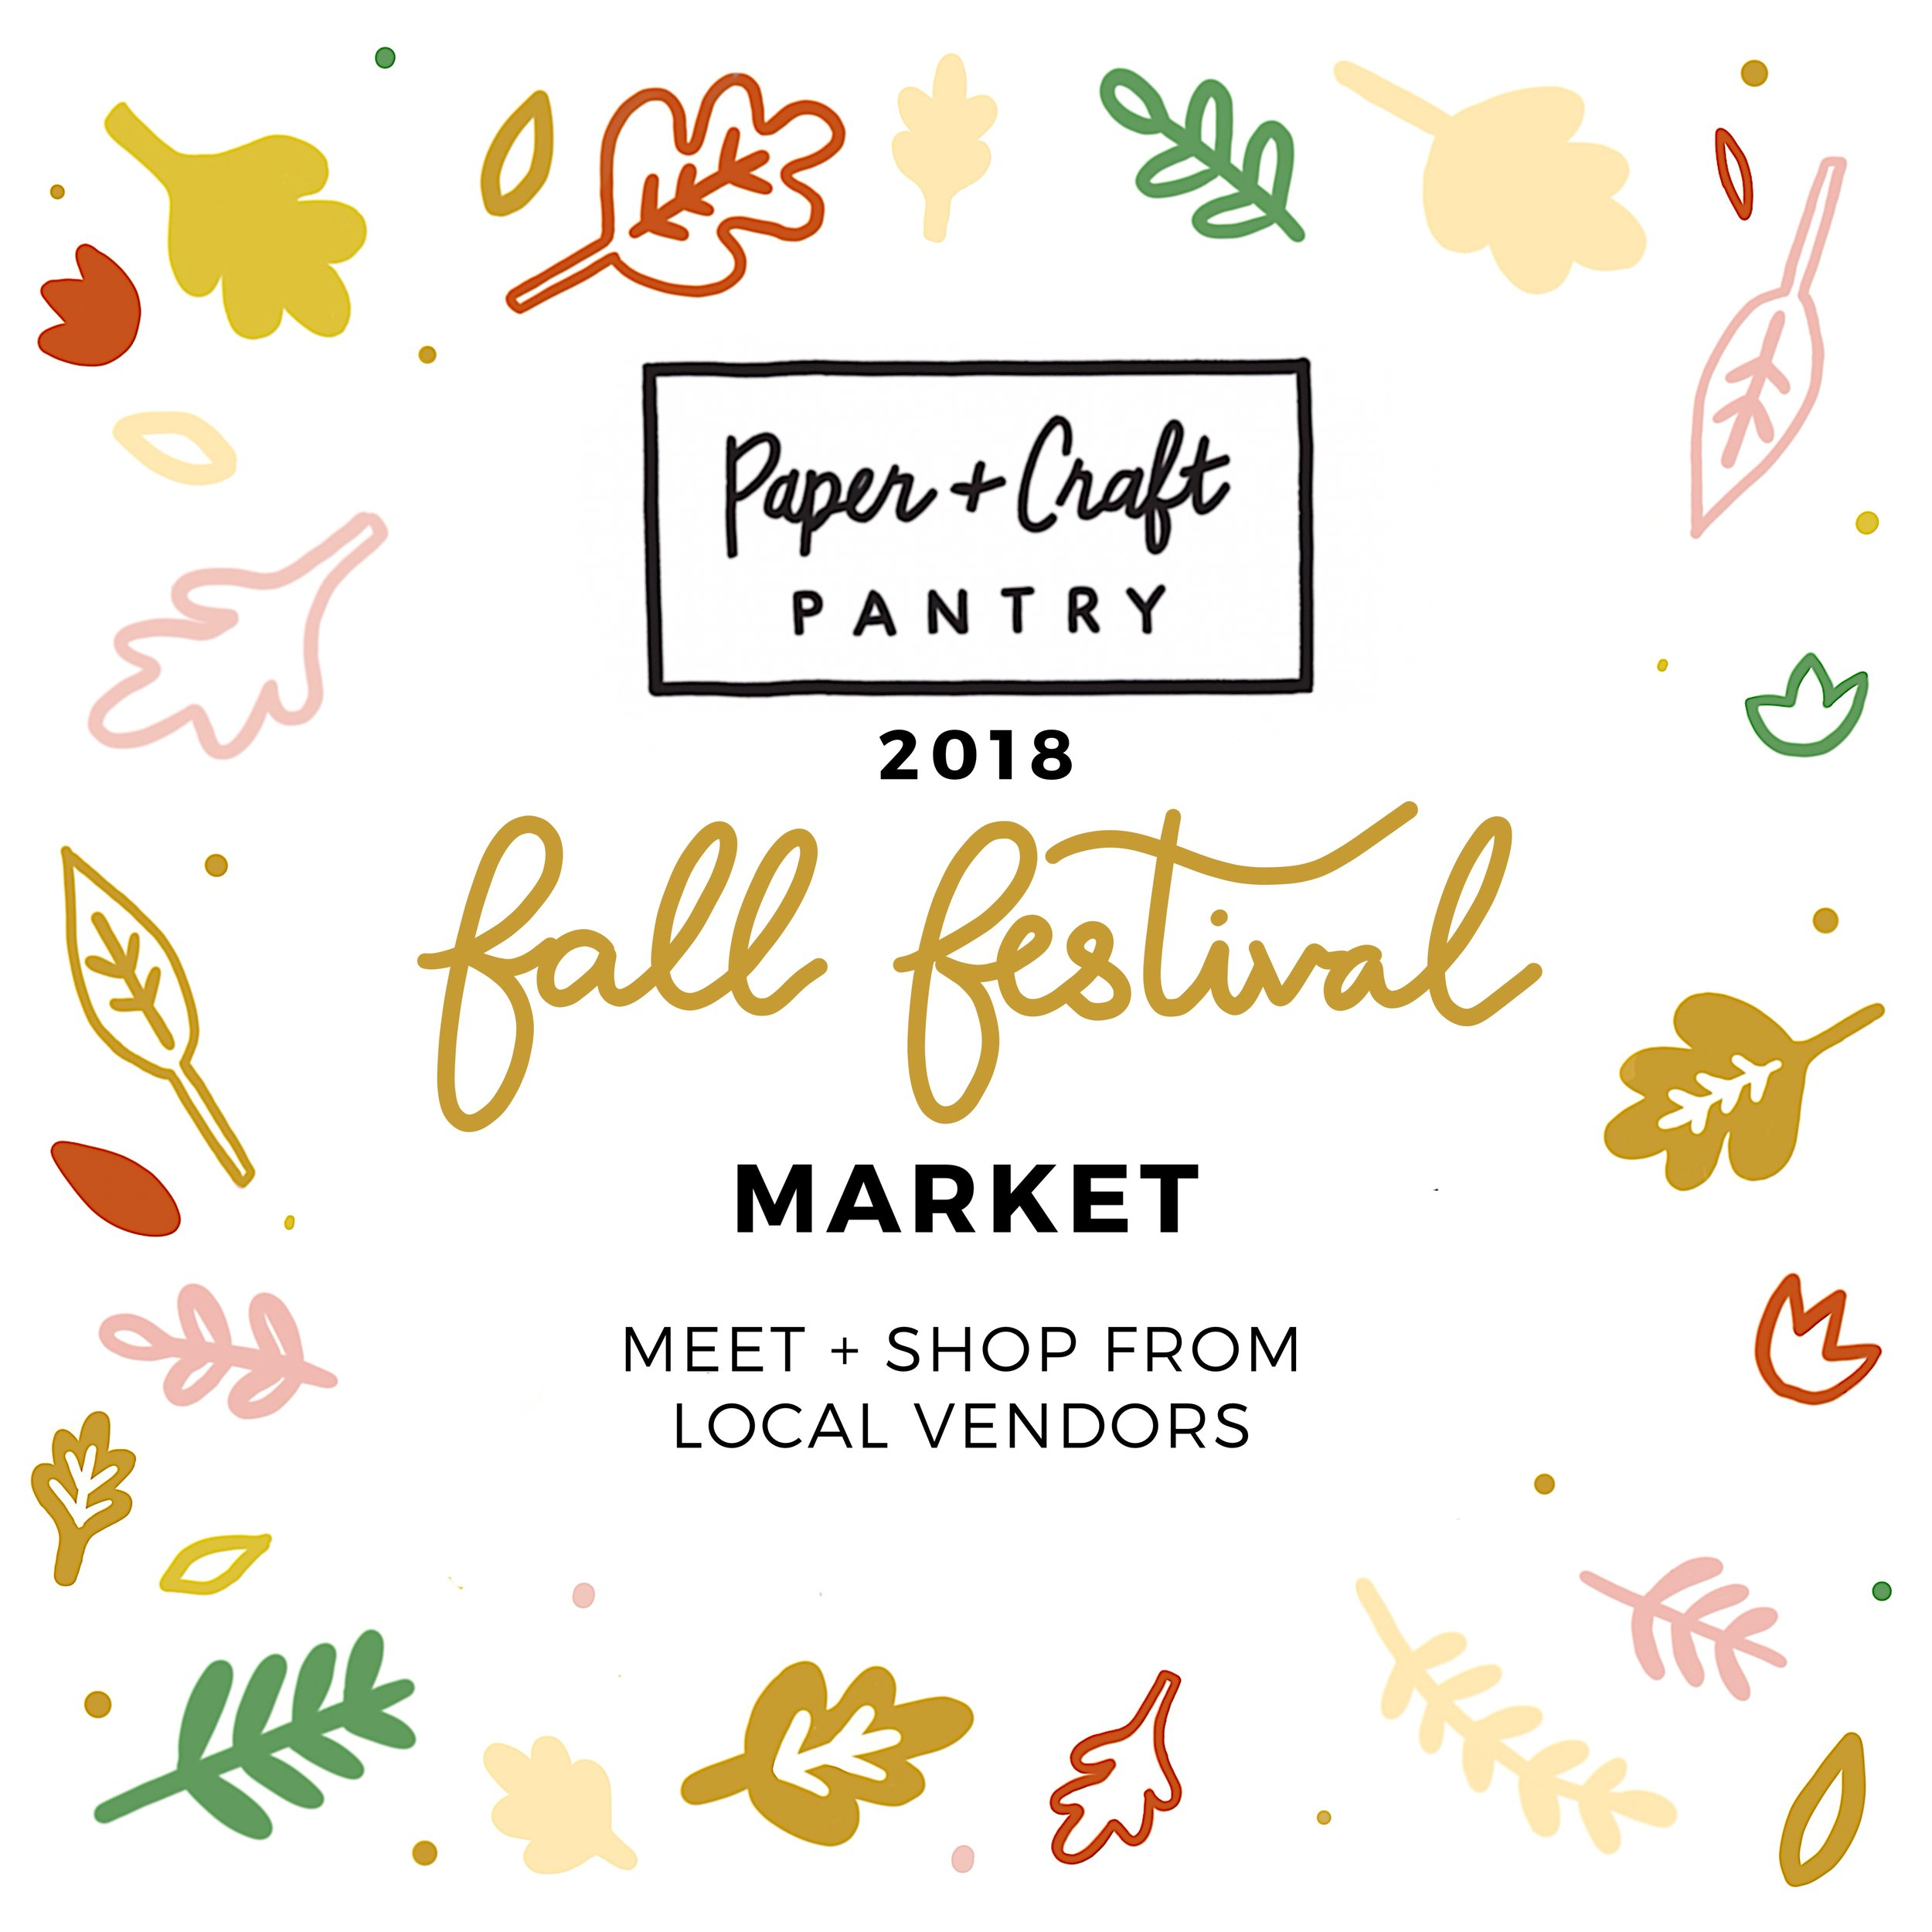 The Paper + Craft Pantry Fall Festival Market featuring local small business owners.